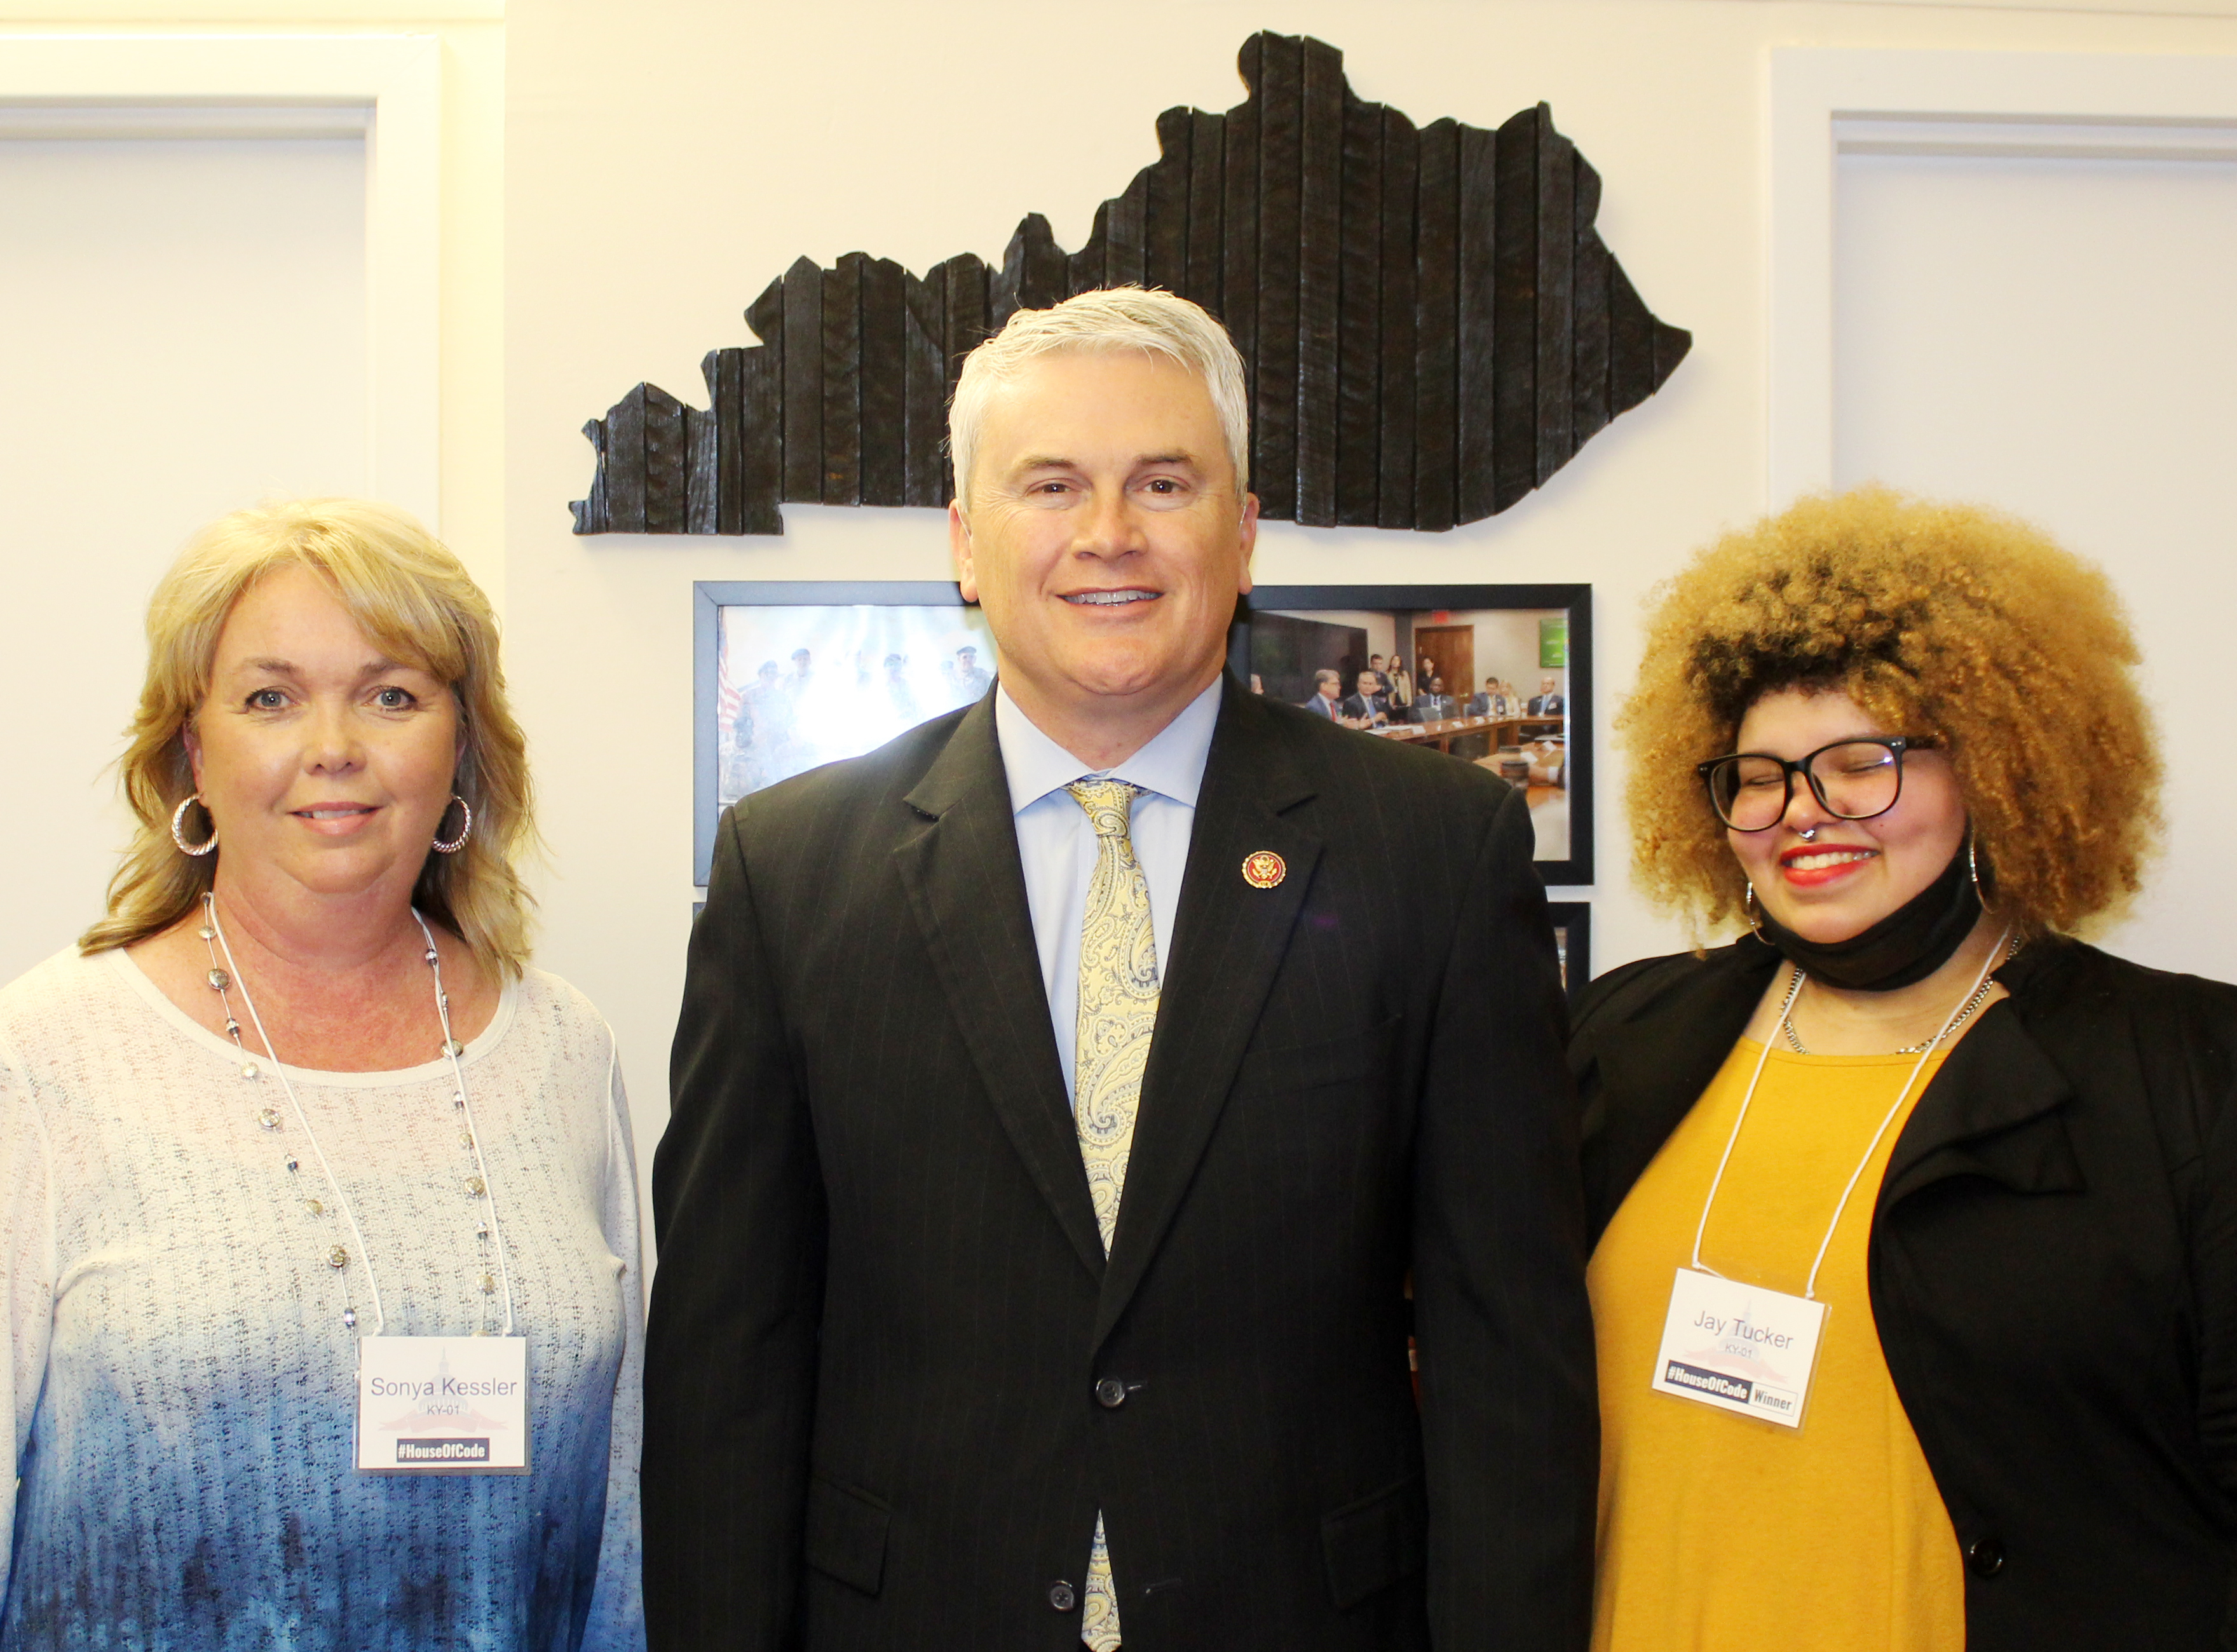 Campbellsville High School senior Jay Tucker was recently honored in Washington, D.C., for winning the First District Congressional App Challenge. She is pictured with U.S. Rep. James Comer, R-Ky., who sponsors the challenge, and CHS computer science teacher Sonya Kessler, at left.